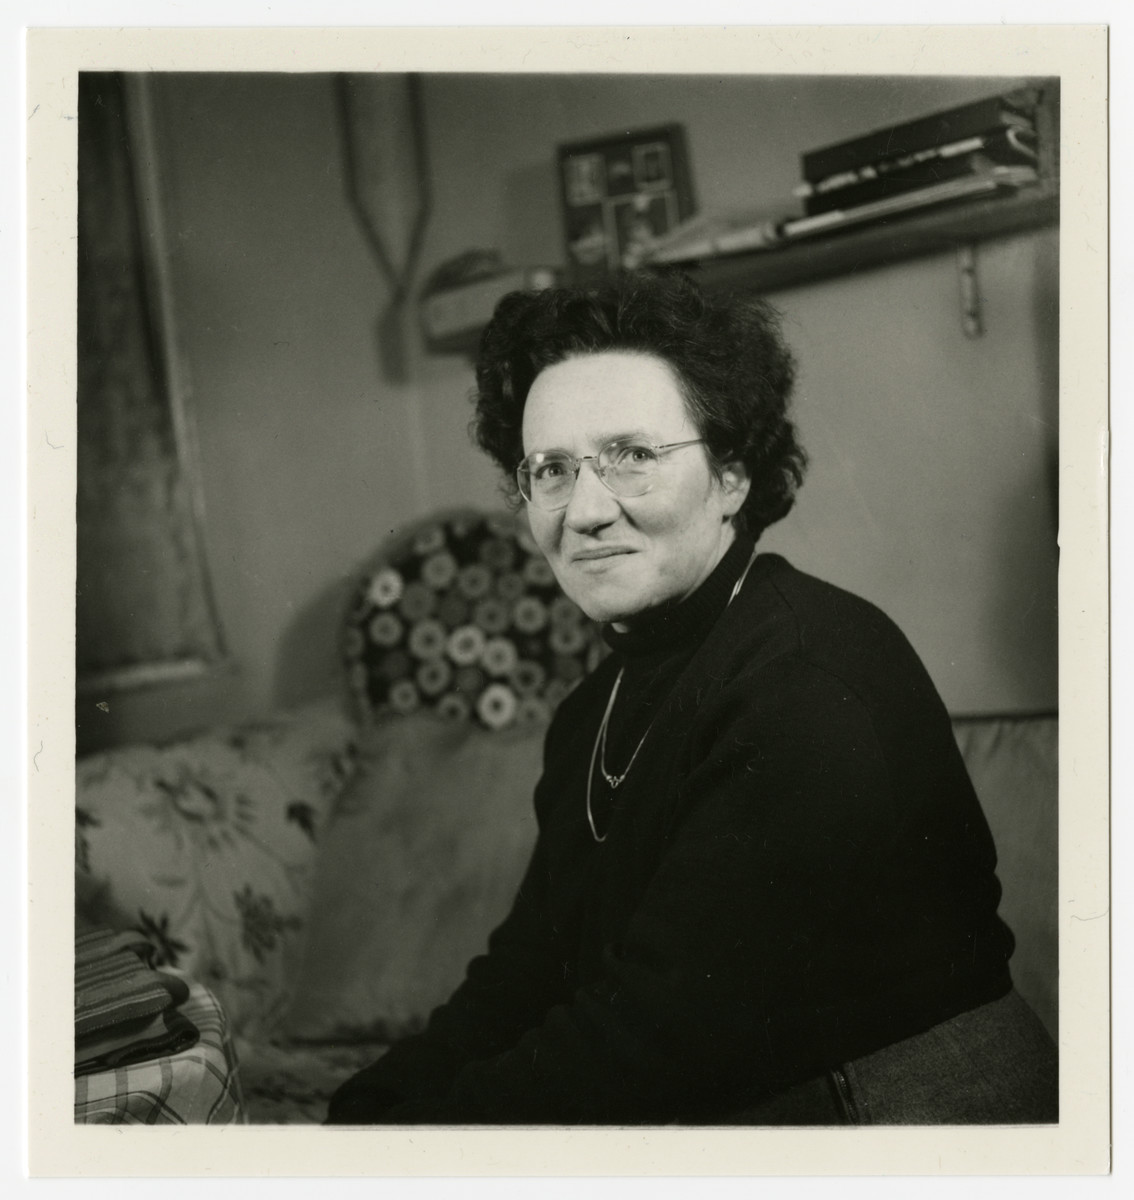 Portrait of Alice Goldberger, the director of the Weir Courtney children's home.